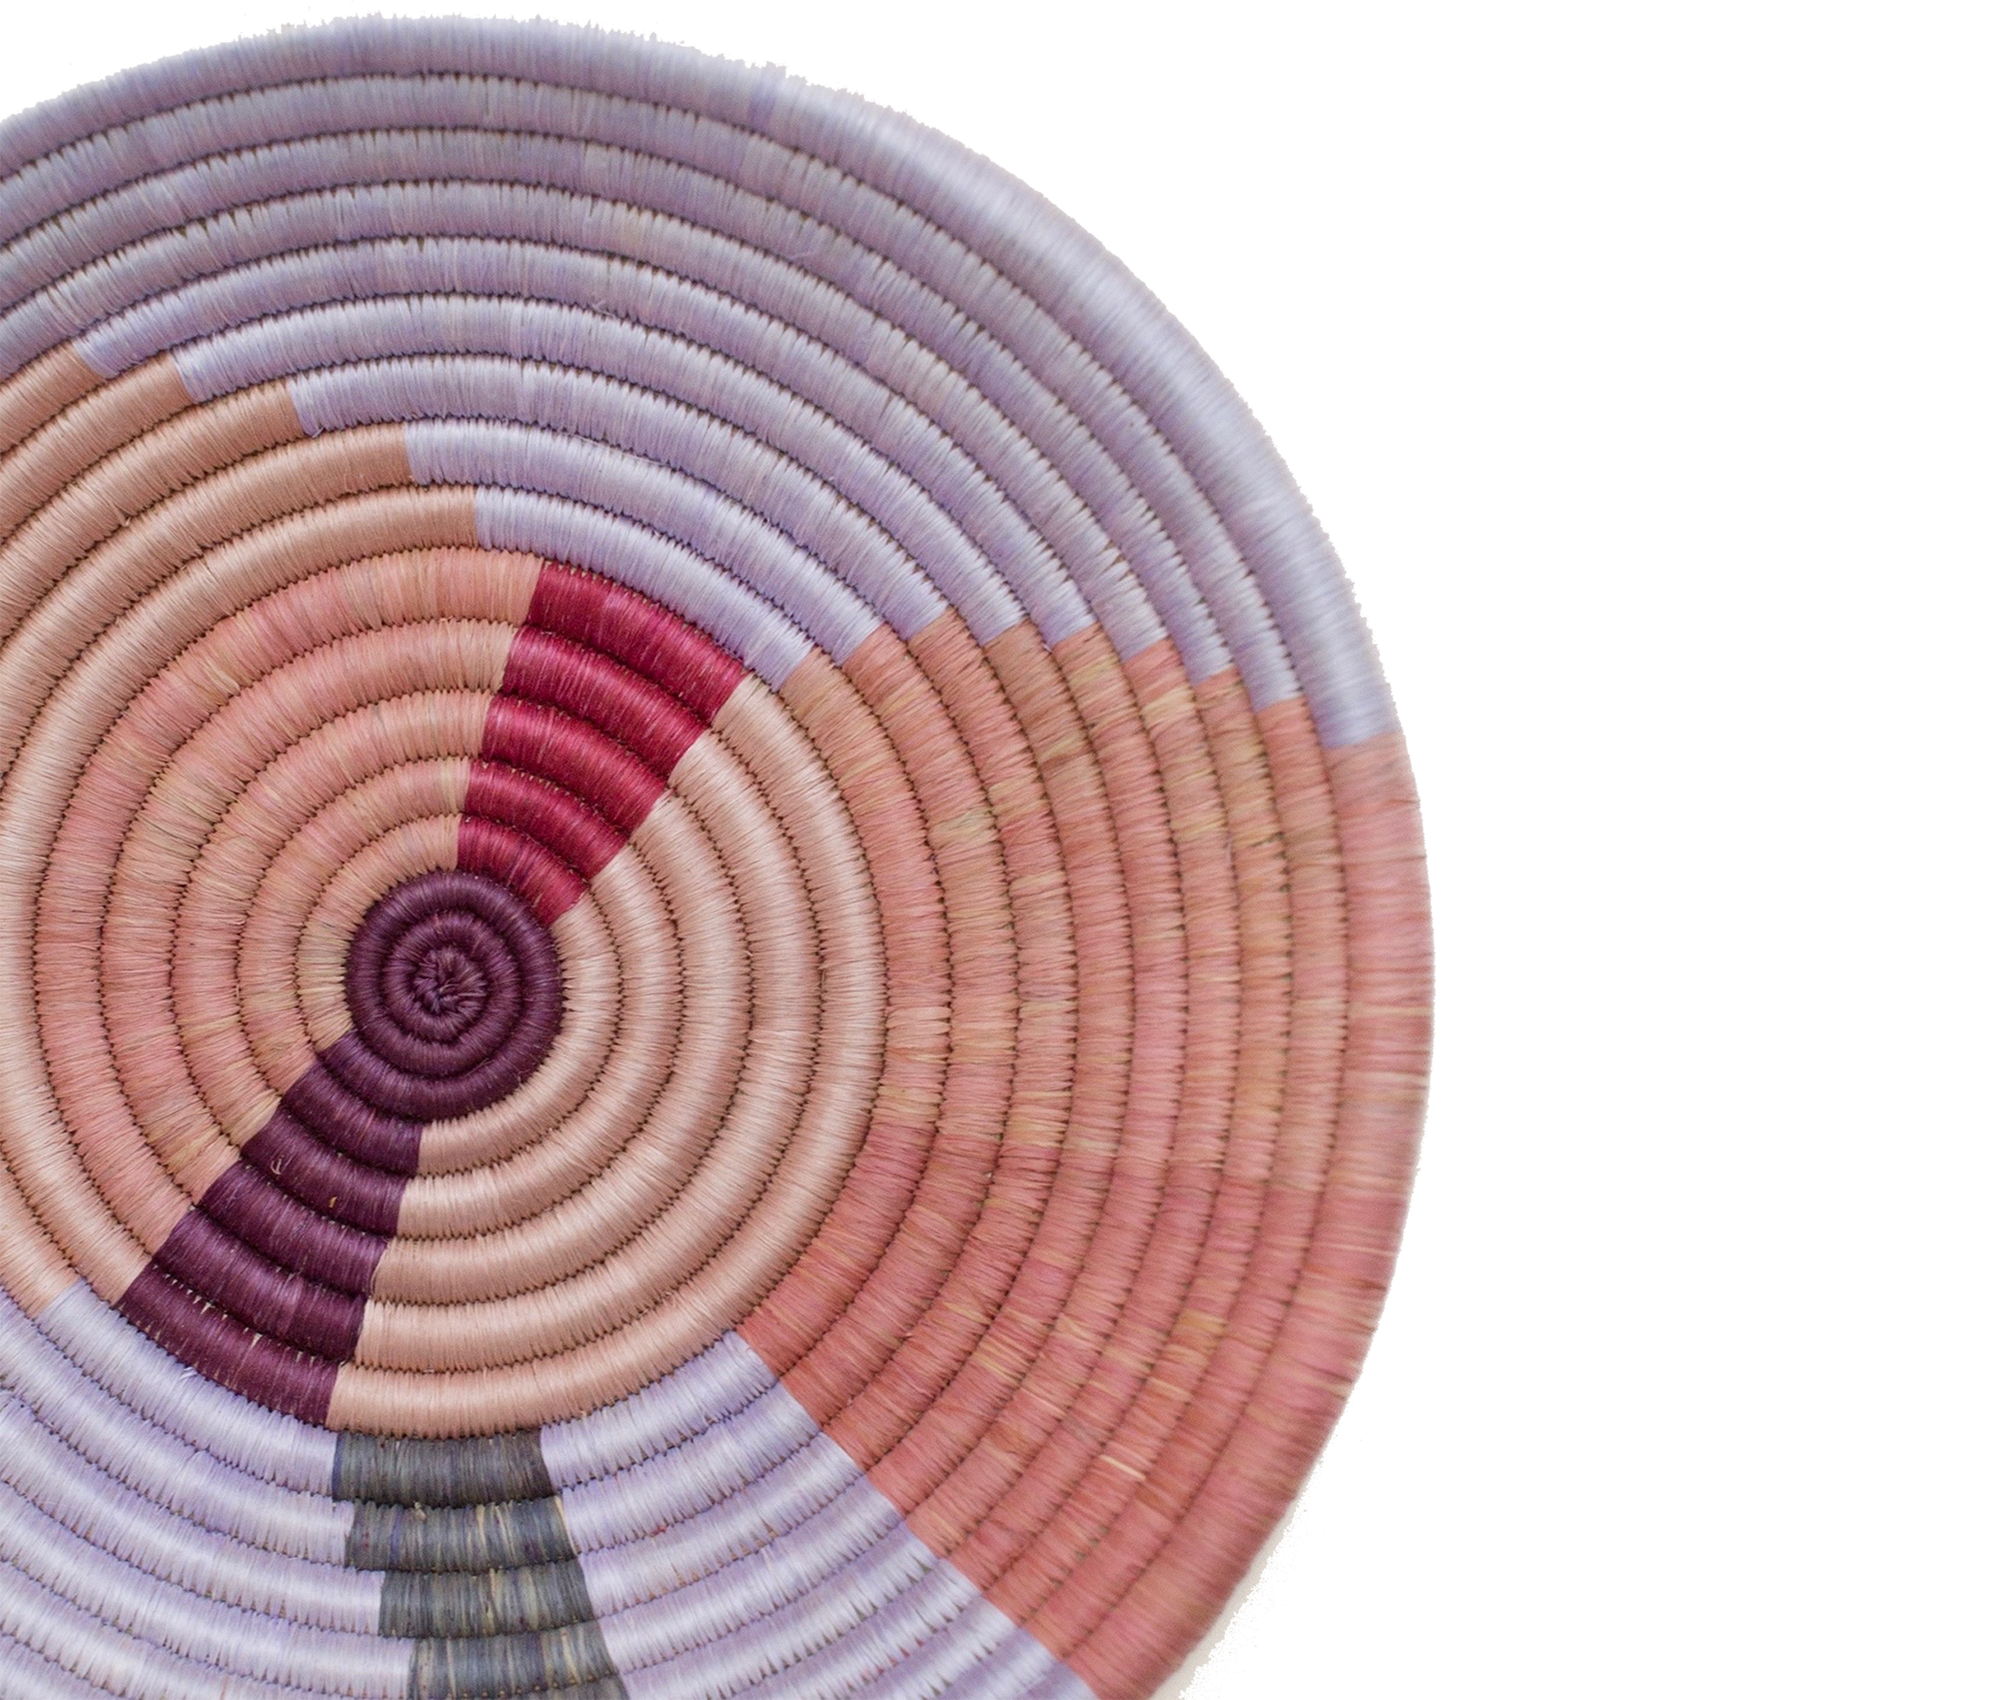 products/purple-abstract-woven-bowl-home-decor-16844634325092.png